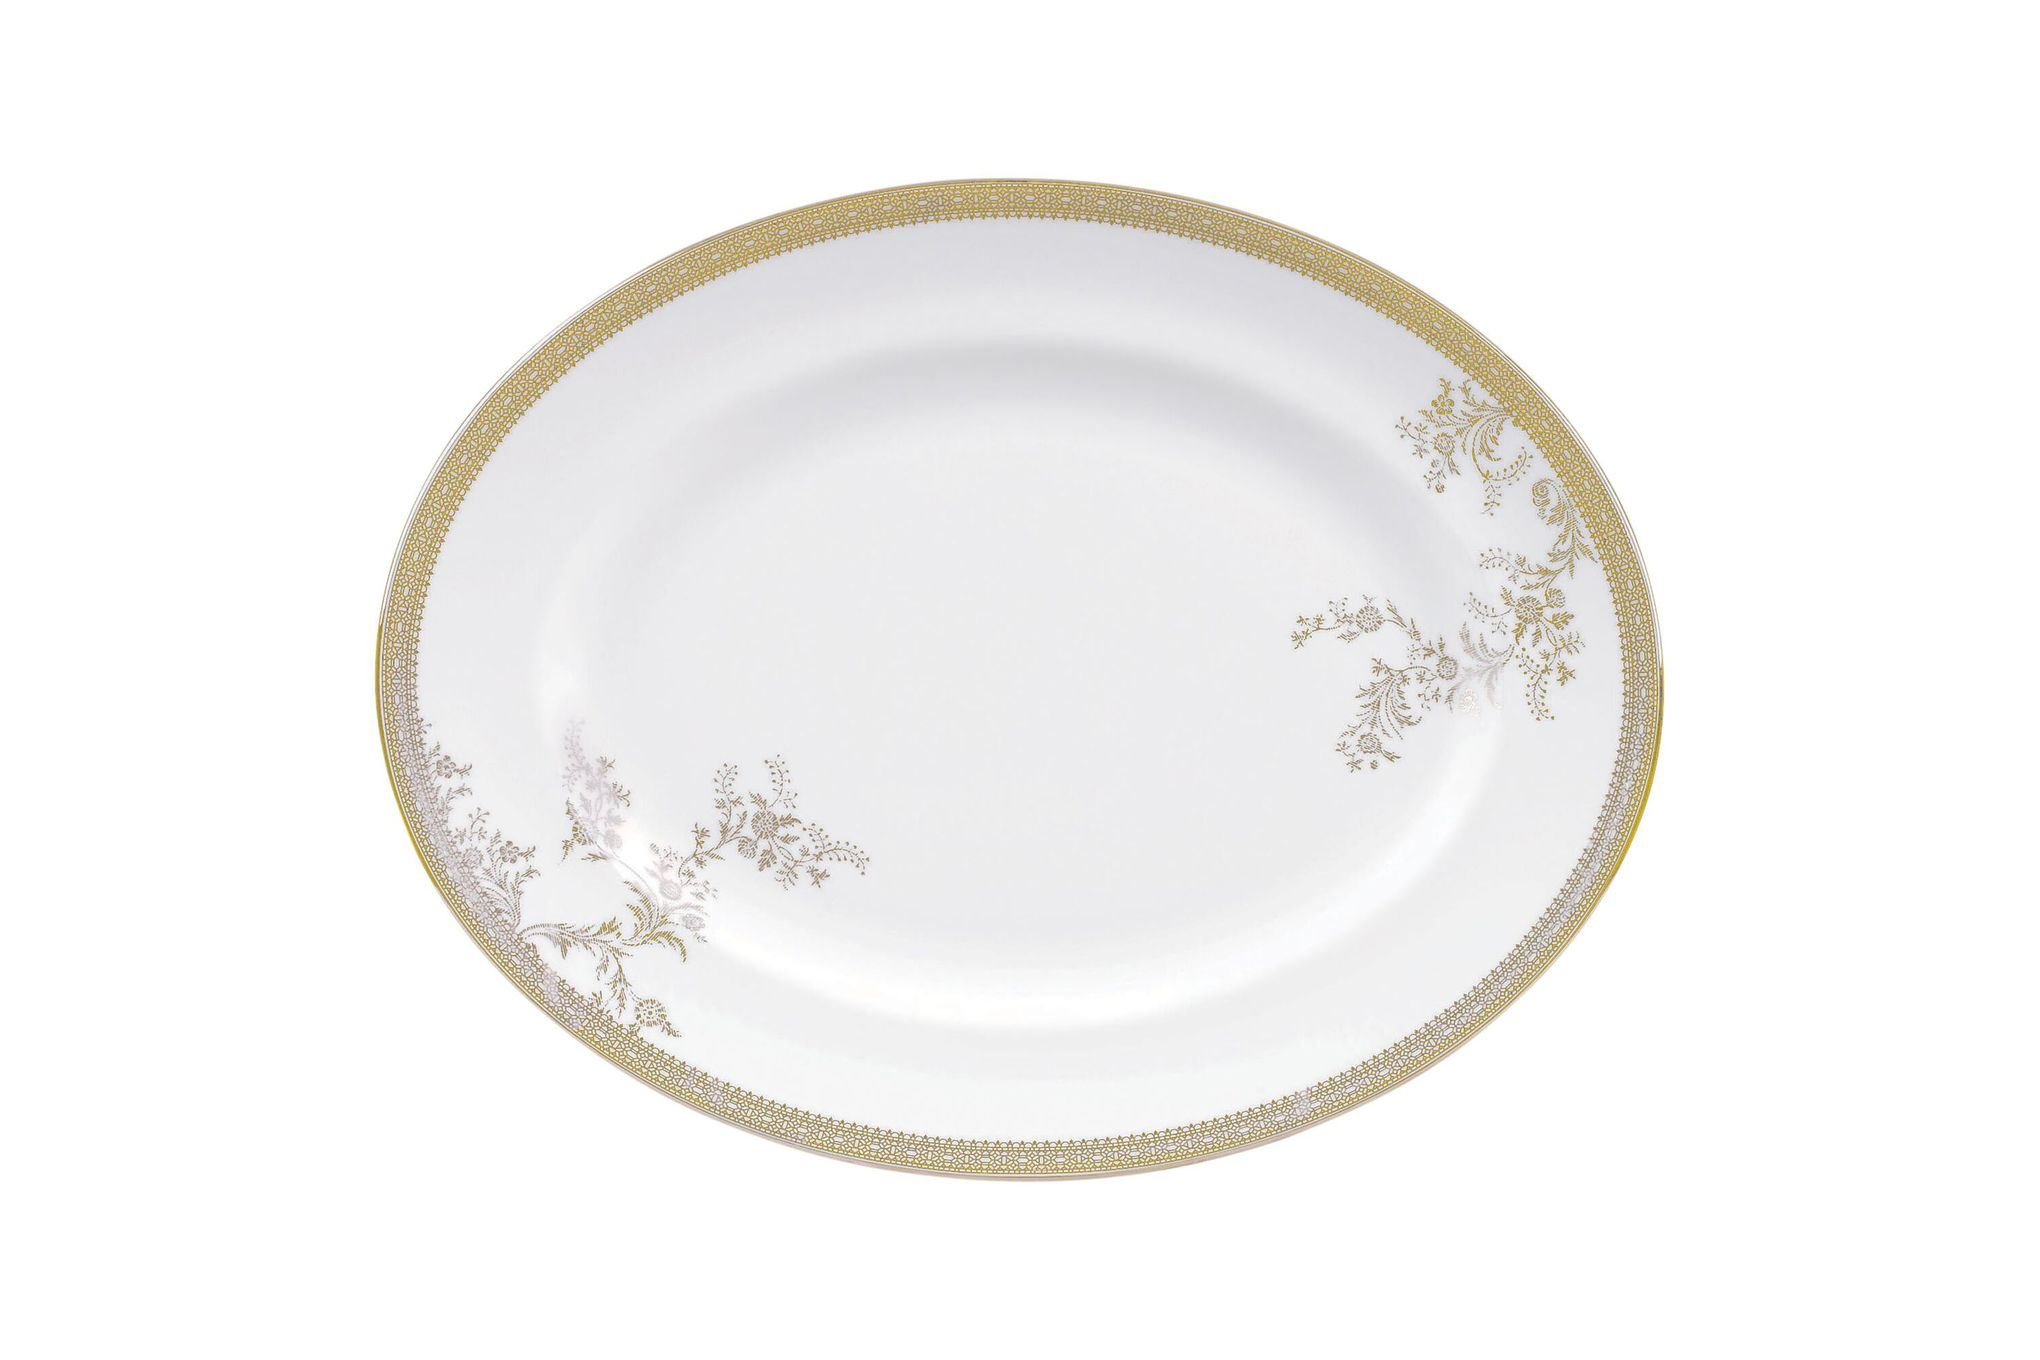 Vera Wang for Wedgwood Lace Gold Oval Plate / Platter 35cm thumb 1